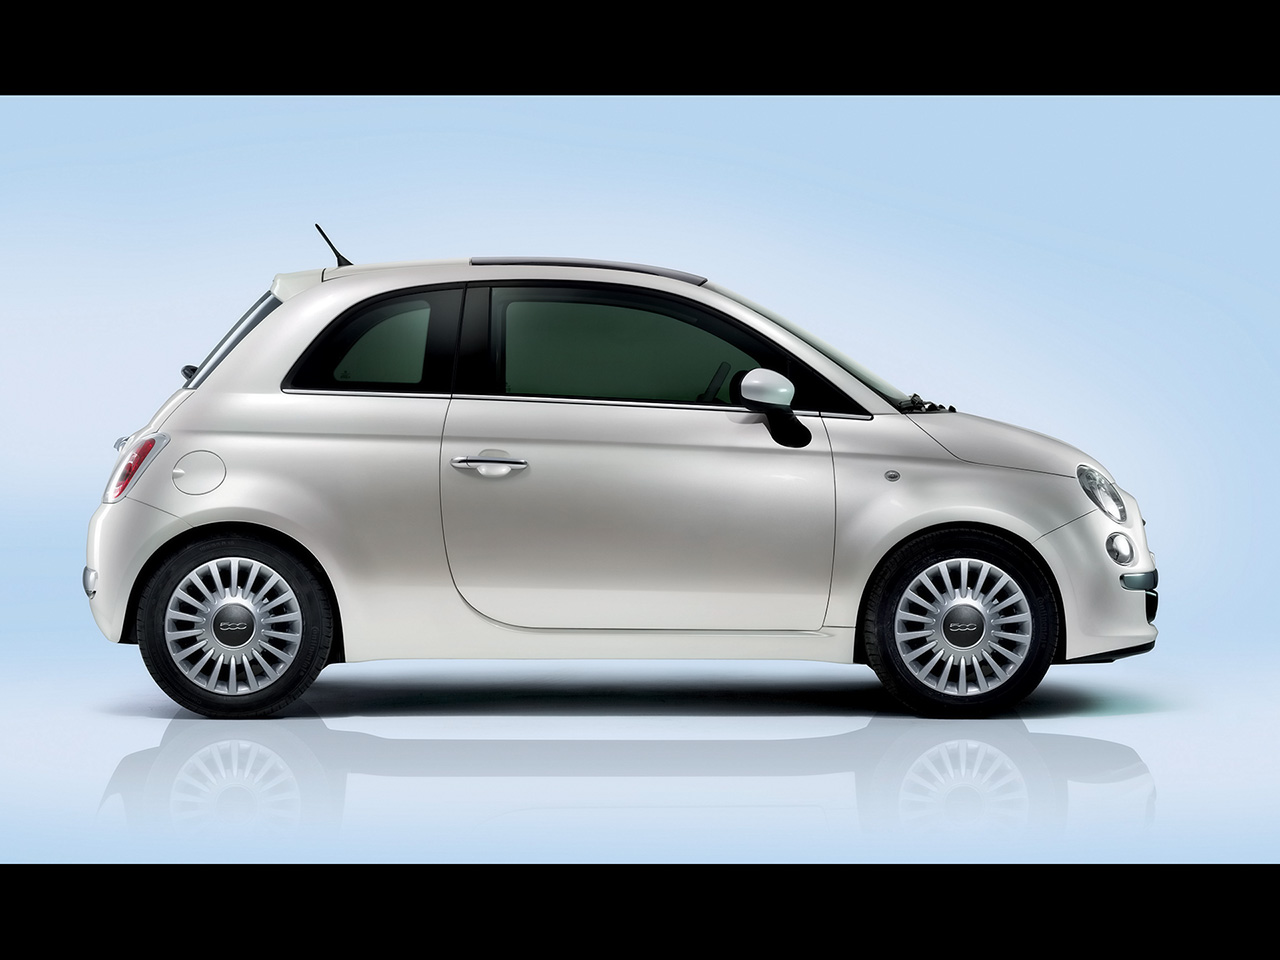 2012 fiat 500 cars pictures wallpaper cars pictures. Black Bedroom Furniture Sets. Home Design Ideas